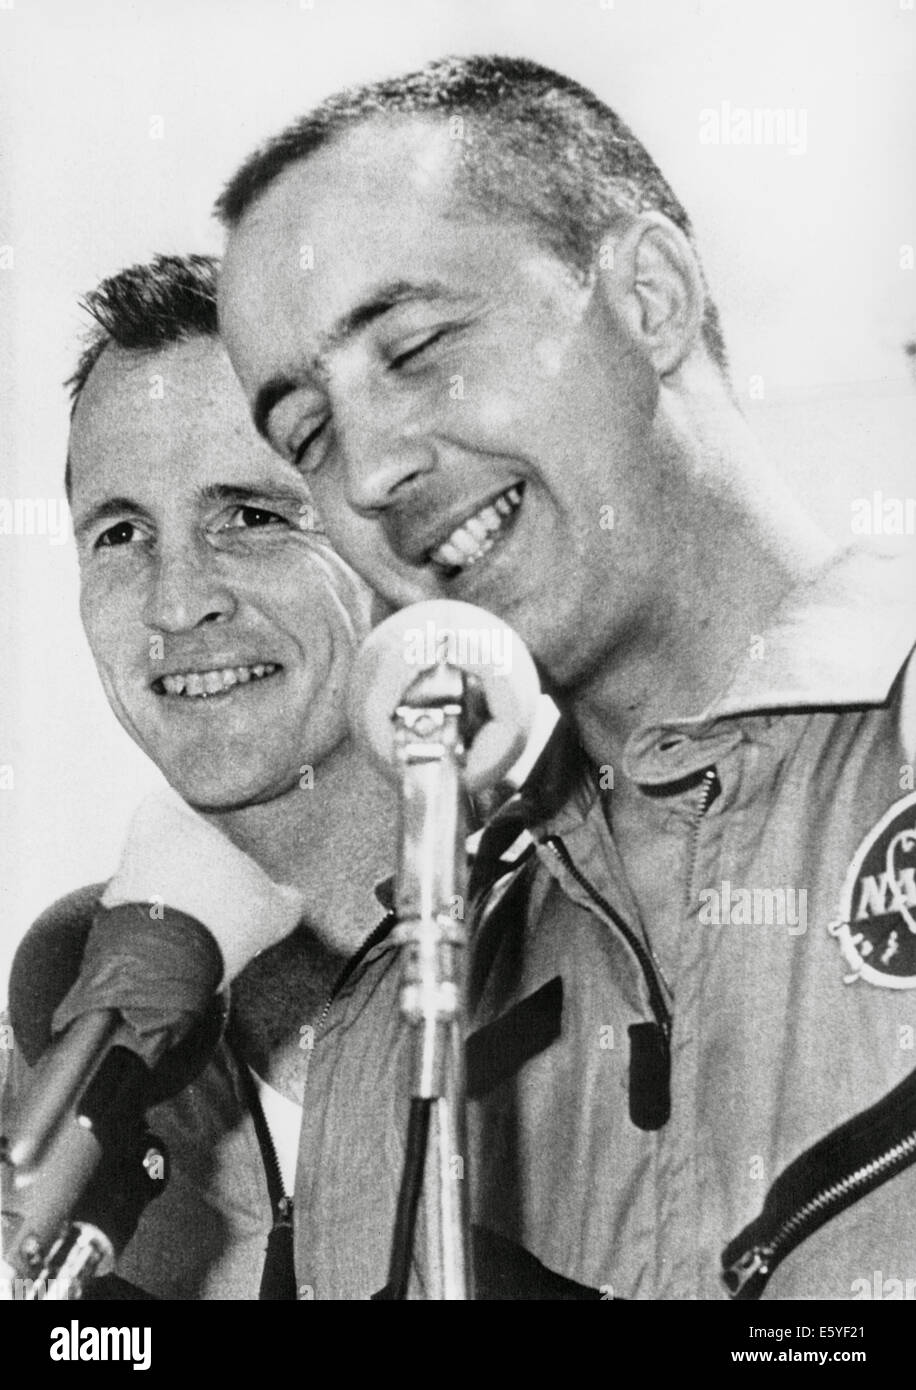 NASA Astronauts James McDivitt (R) and Edward White II at Press Conference upon Completion of Gemini IV Space Mission, - Stock Image